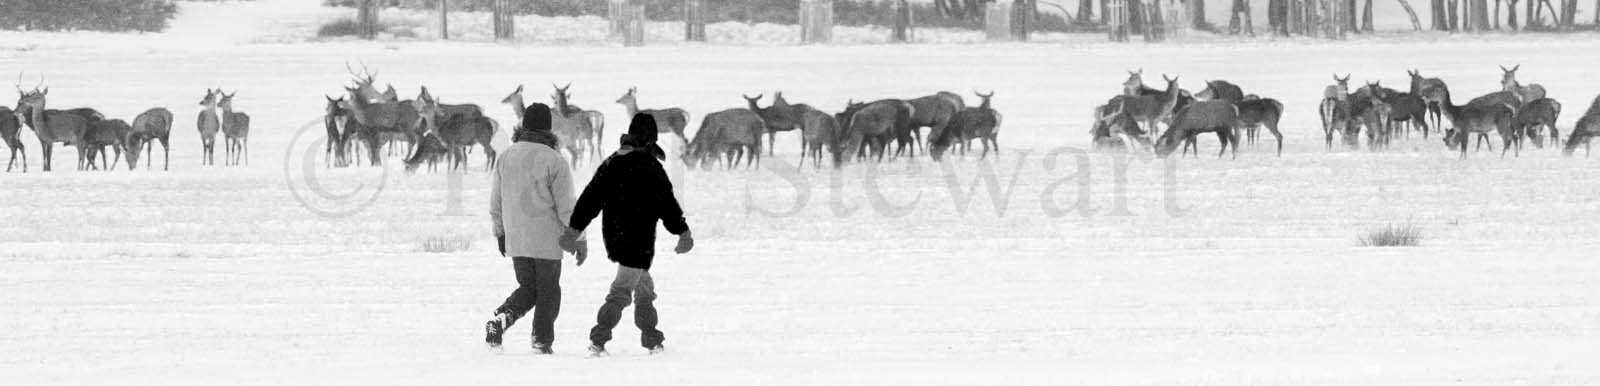 02/12/2010 OPS: Winter fun as Christmas card scenes come to Richmond Park early this year ©Paul Stewart 2010 07917652636